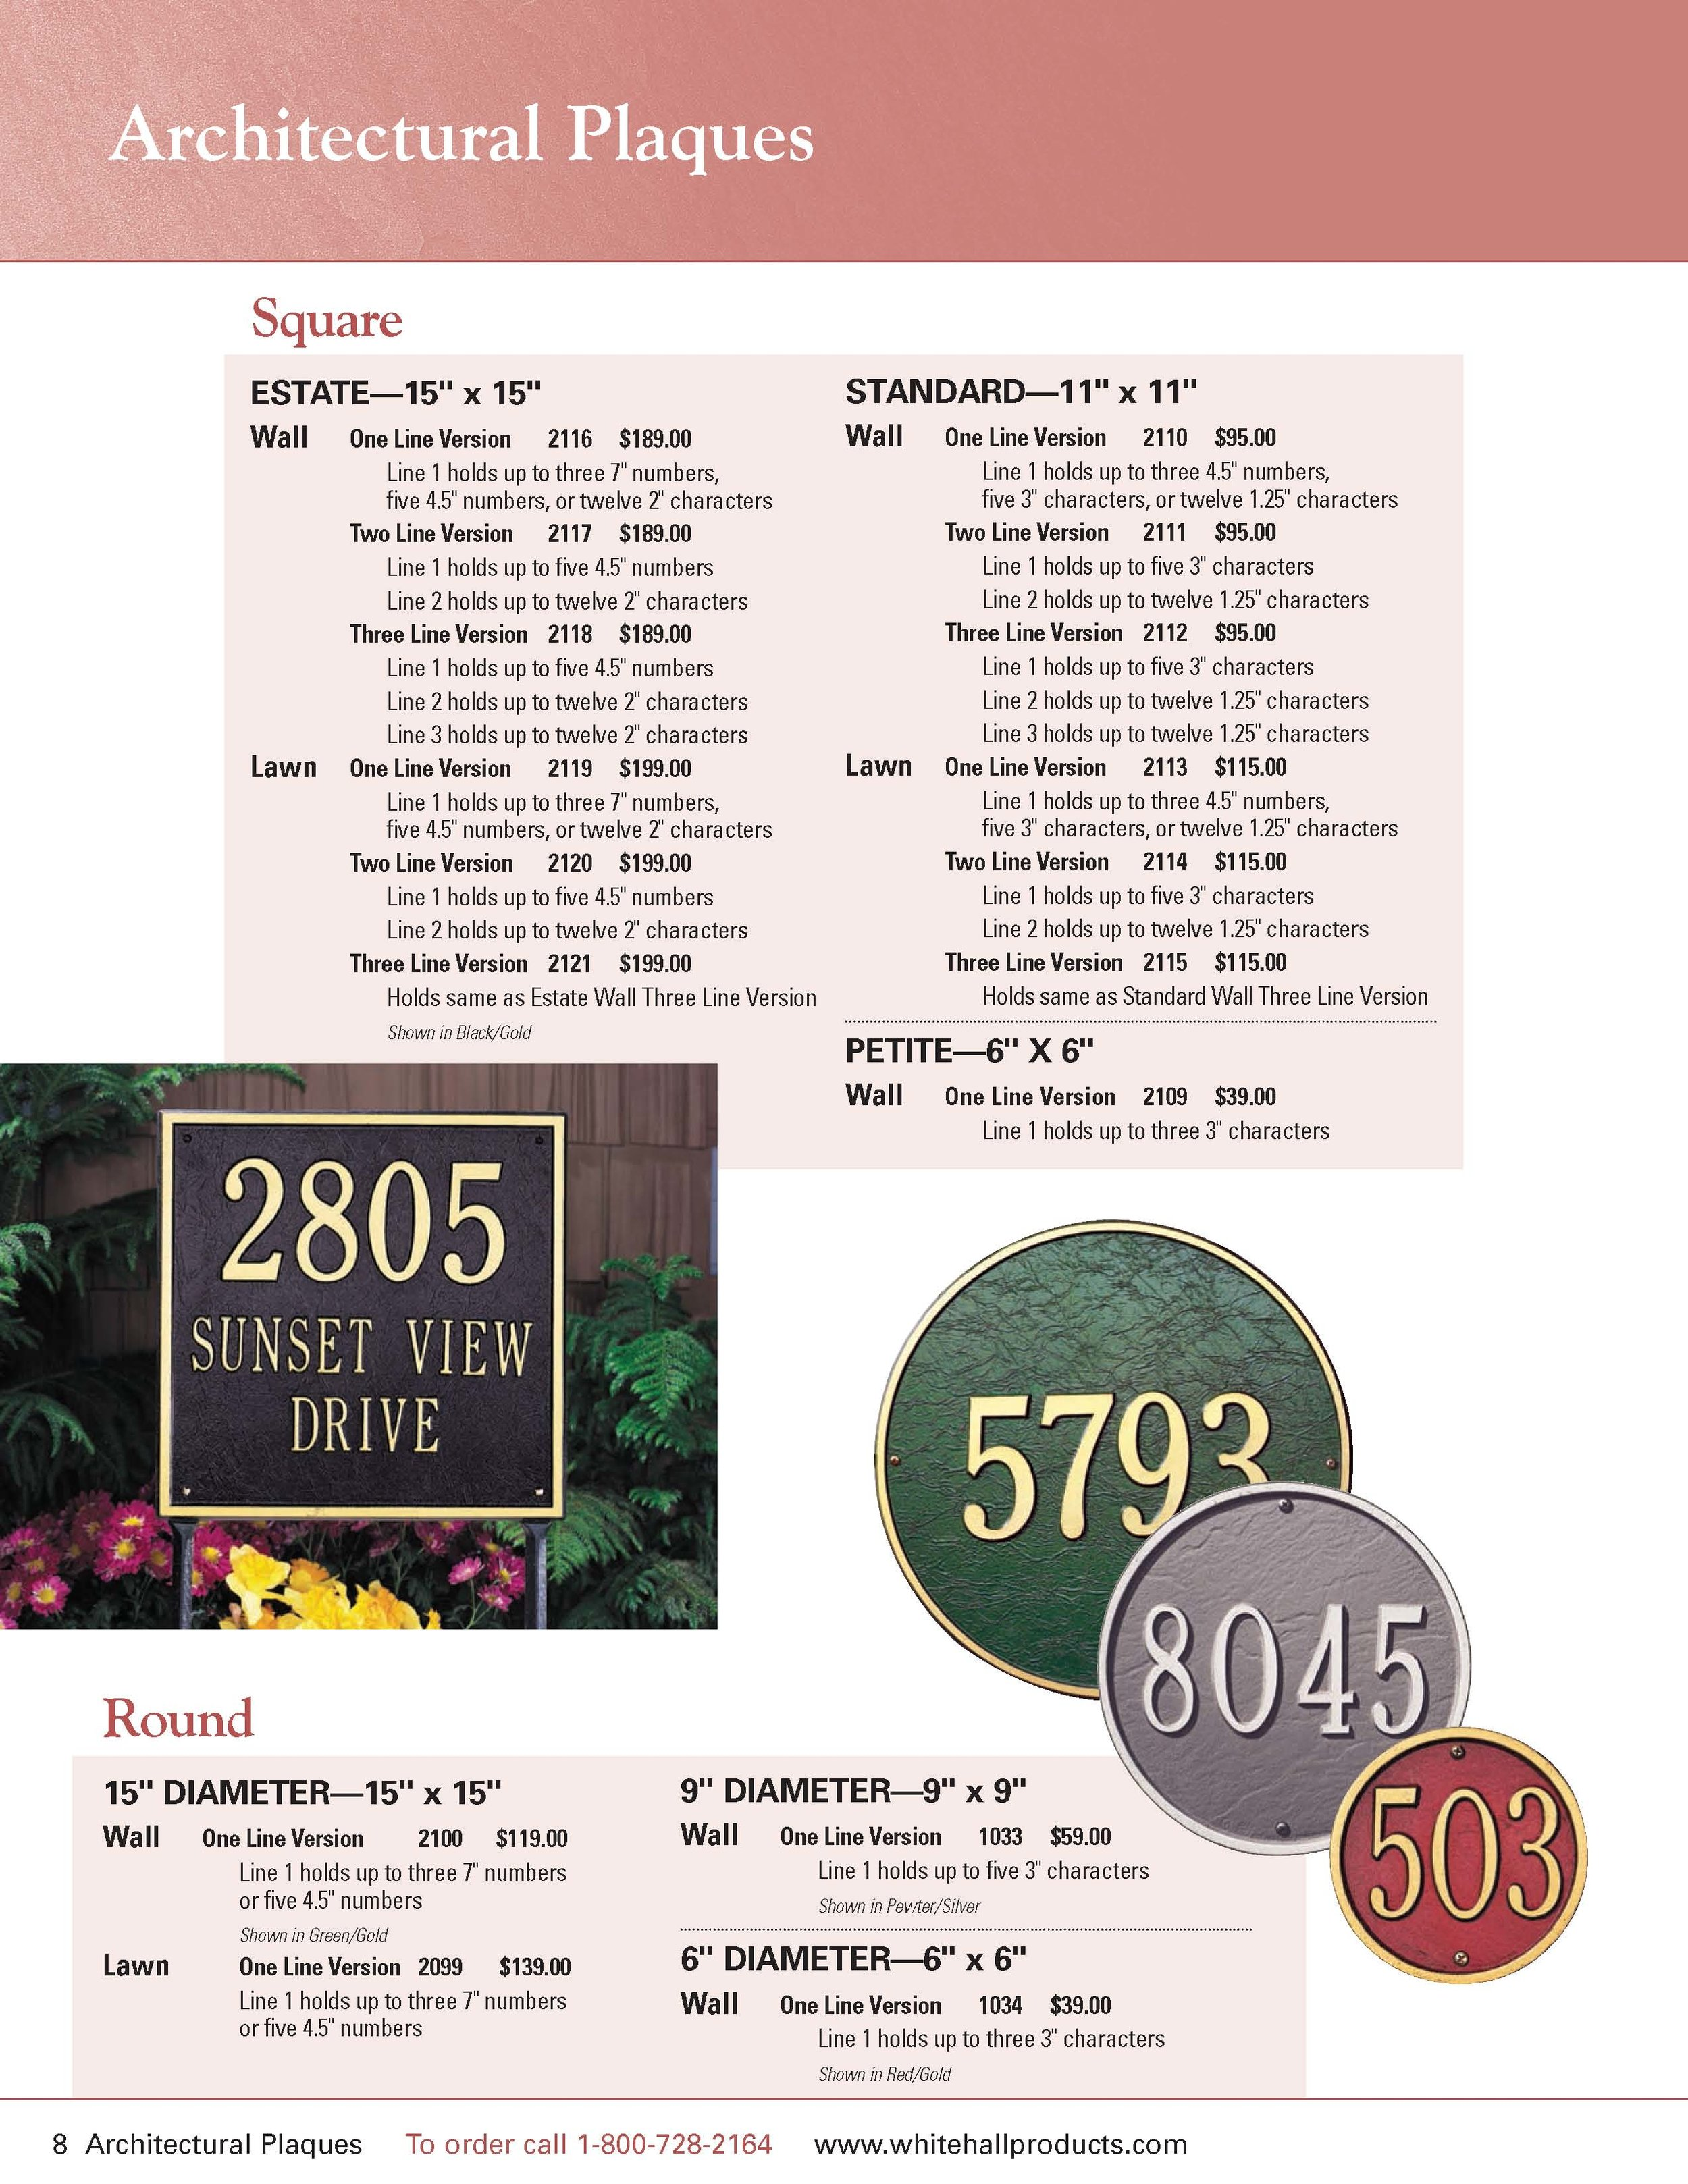 whitehall_catalog_pers_Page_08.jpg